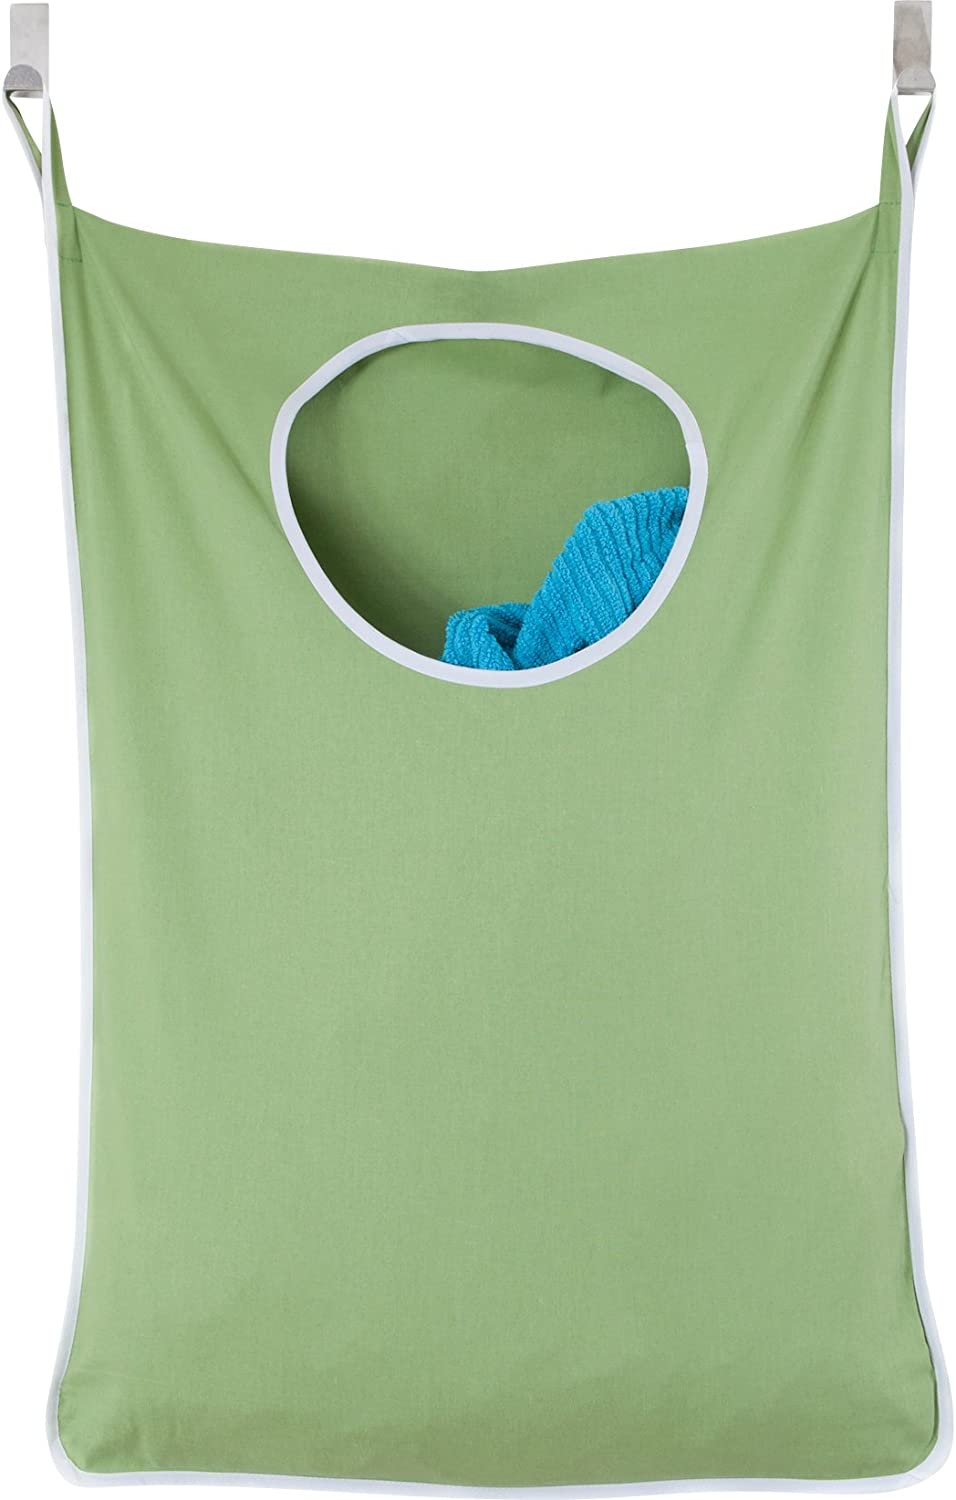 Urban Mom Door Hanging Laundry Hamper with Stainless Steel Hooks (Green)